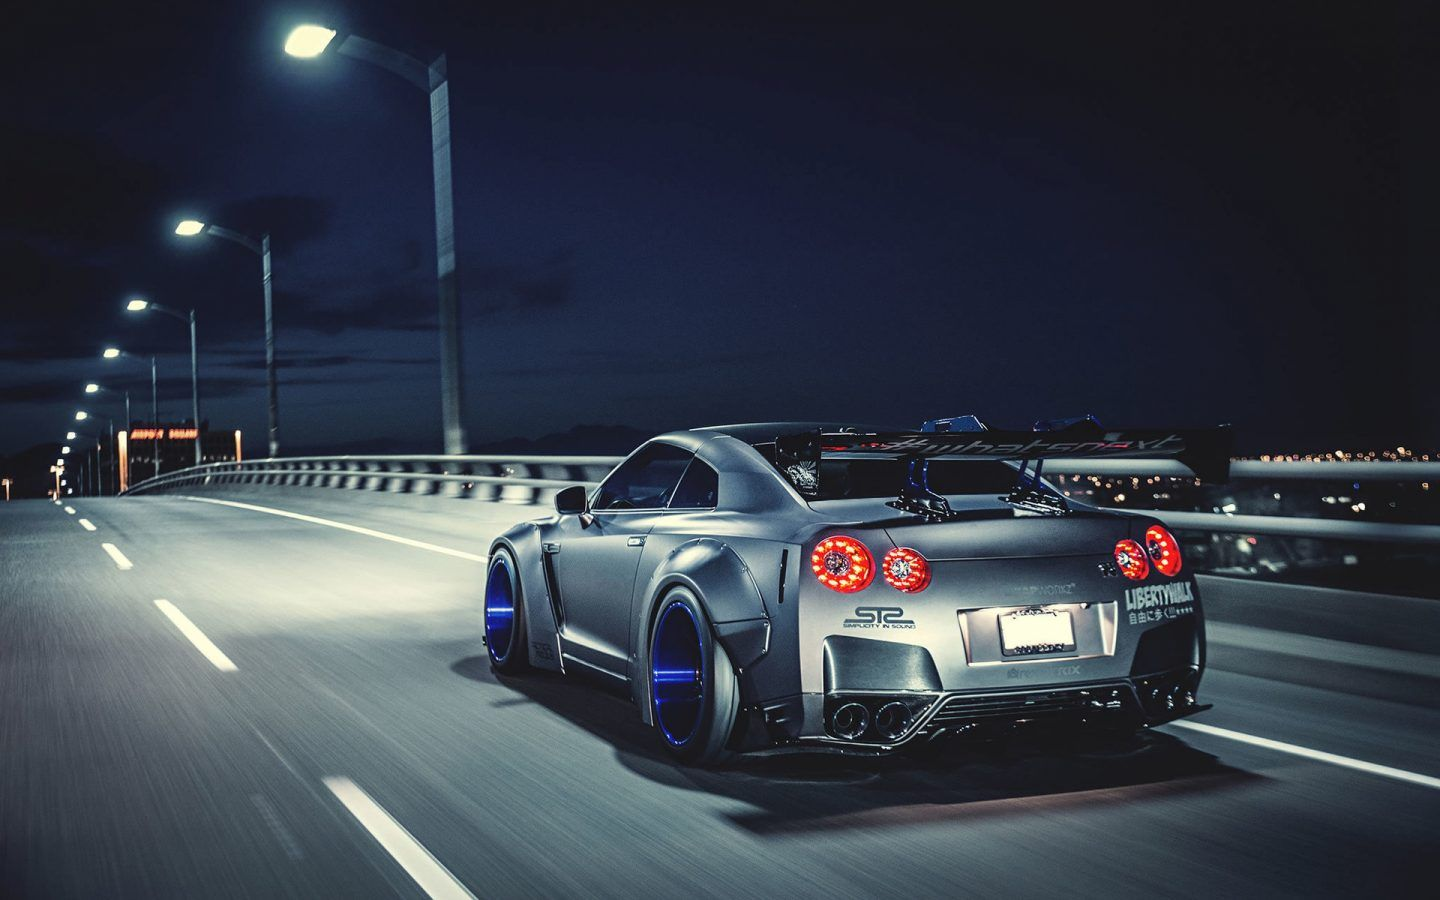 Nissan Gtr Liberty Walk 4k Hd Wallpaper Coches Nissan Cars Y